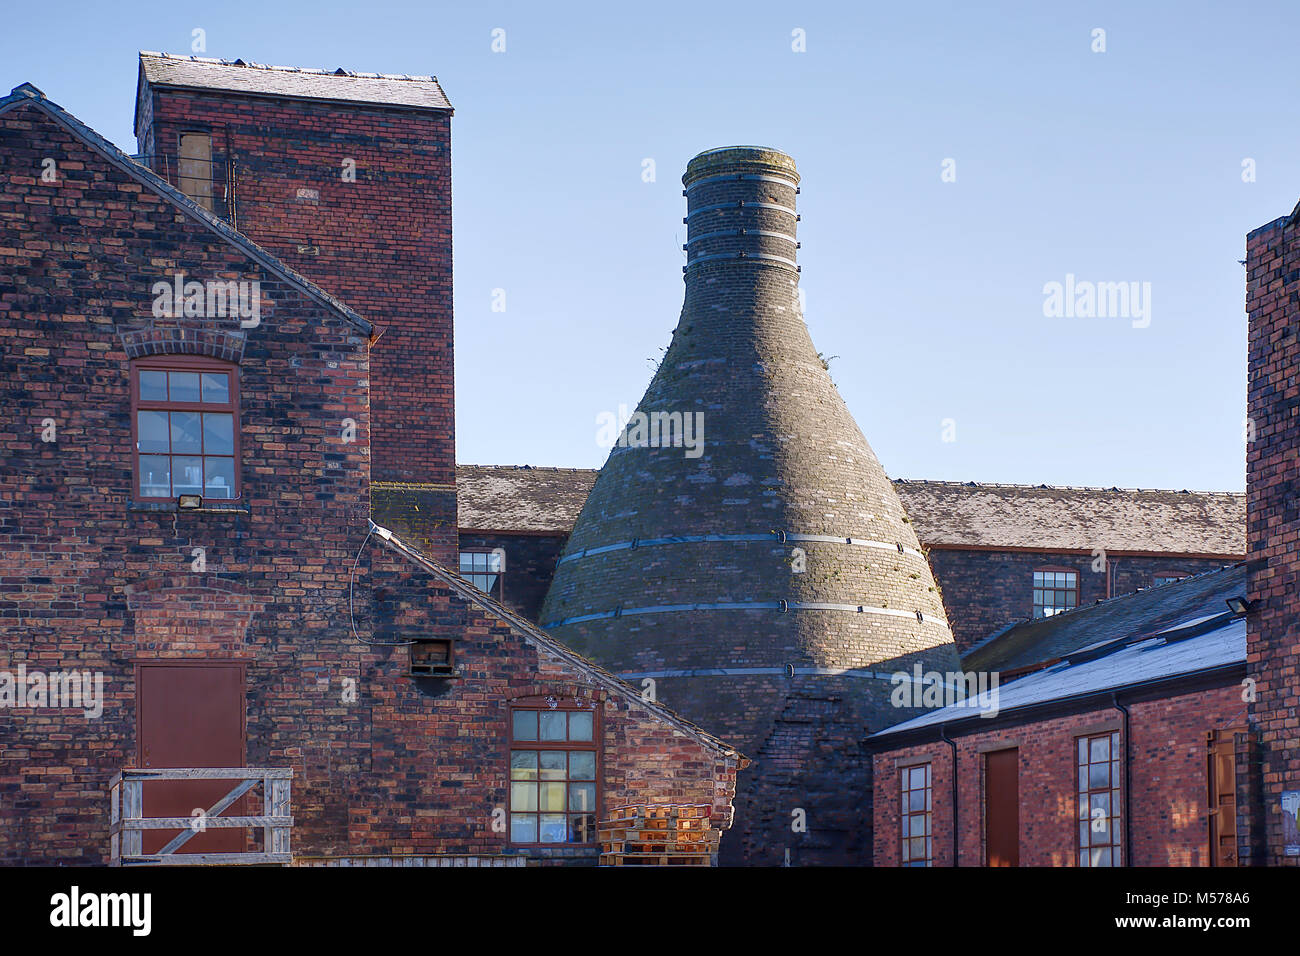 Bottle oven in Middleport pottery located on banks of Trent and Mersey canal,Stoke on Trent ,West Midlands,Staffordshire,United - Stock Image